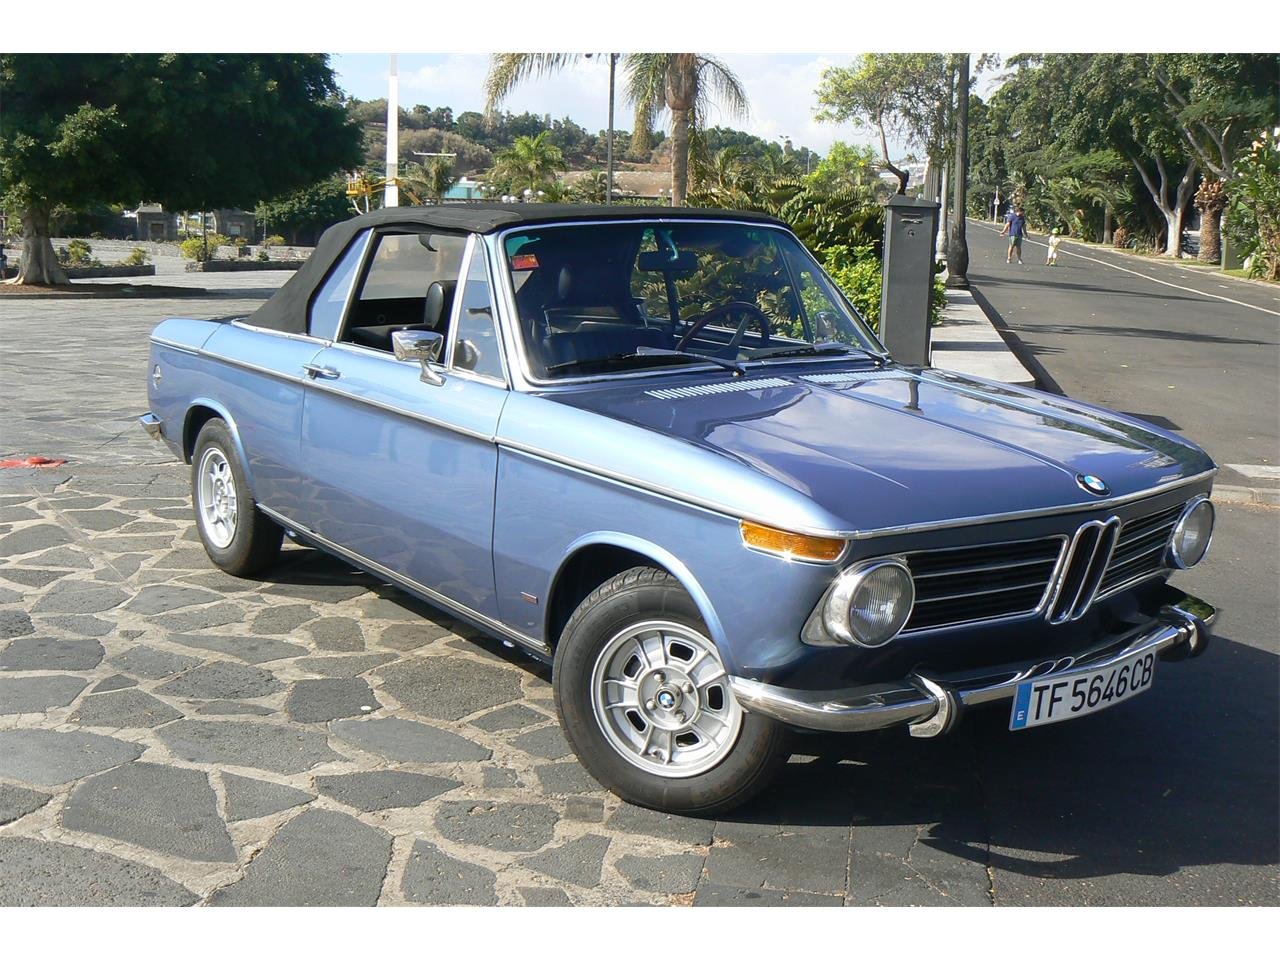 Large Picture of 1971 BMW 2002 located in Santa Cruz de Tenerife Canary Islands Offered by a Private Seller - OZFT